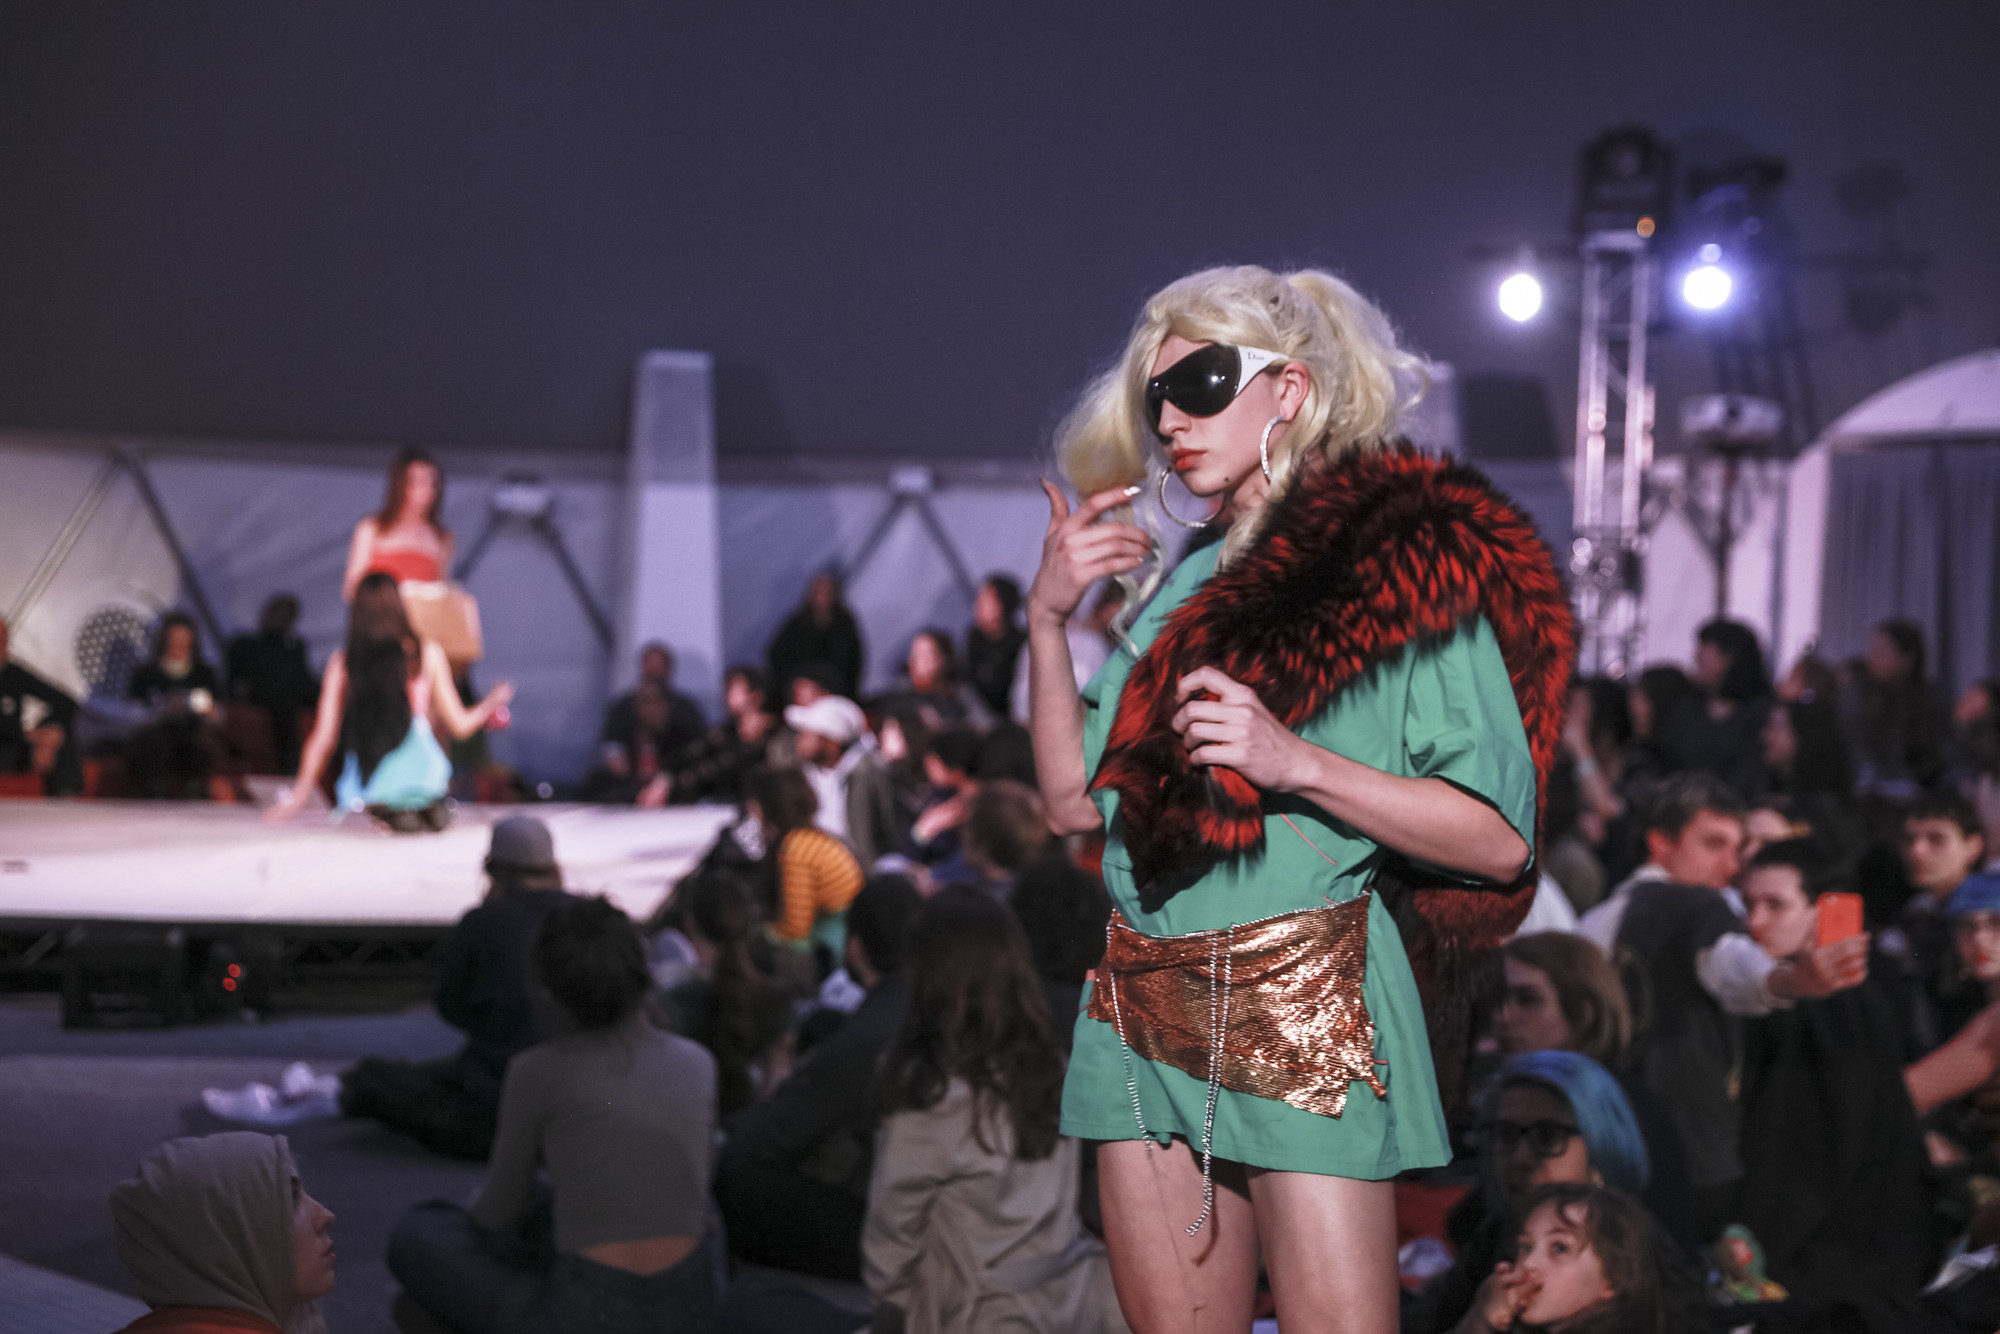 Crumbling World Runway on February 5, 2017, presented at MoMA PS1 as part of VW Sunday Sessions 2016-2017. Photo by Charles Roussel.